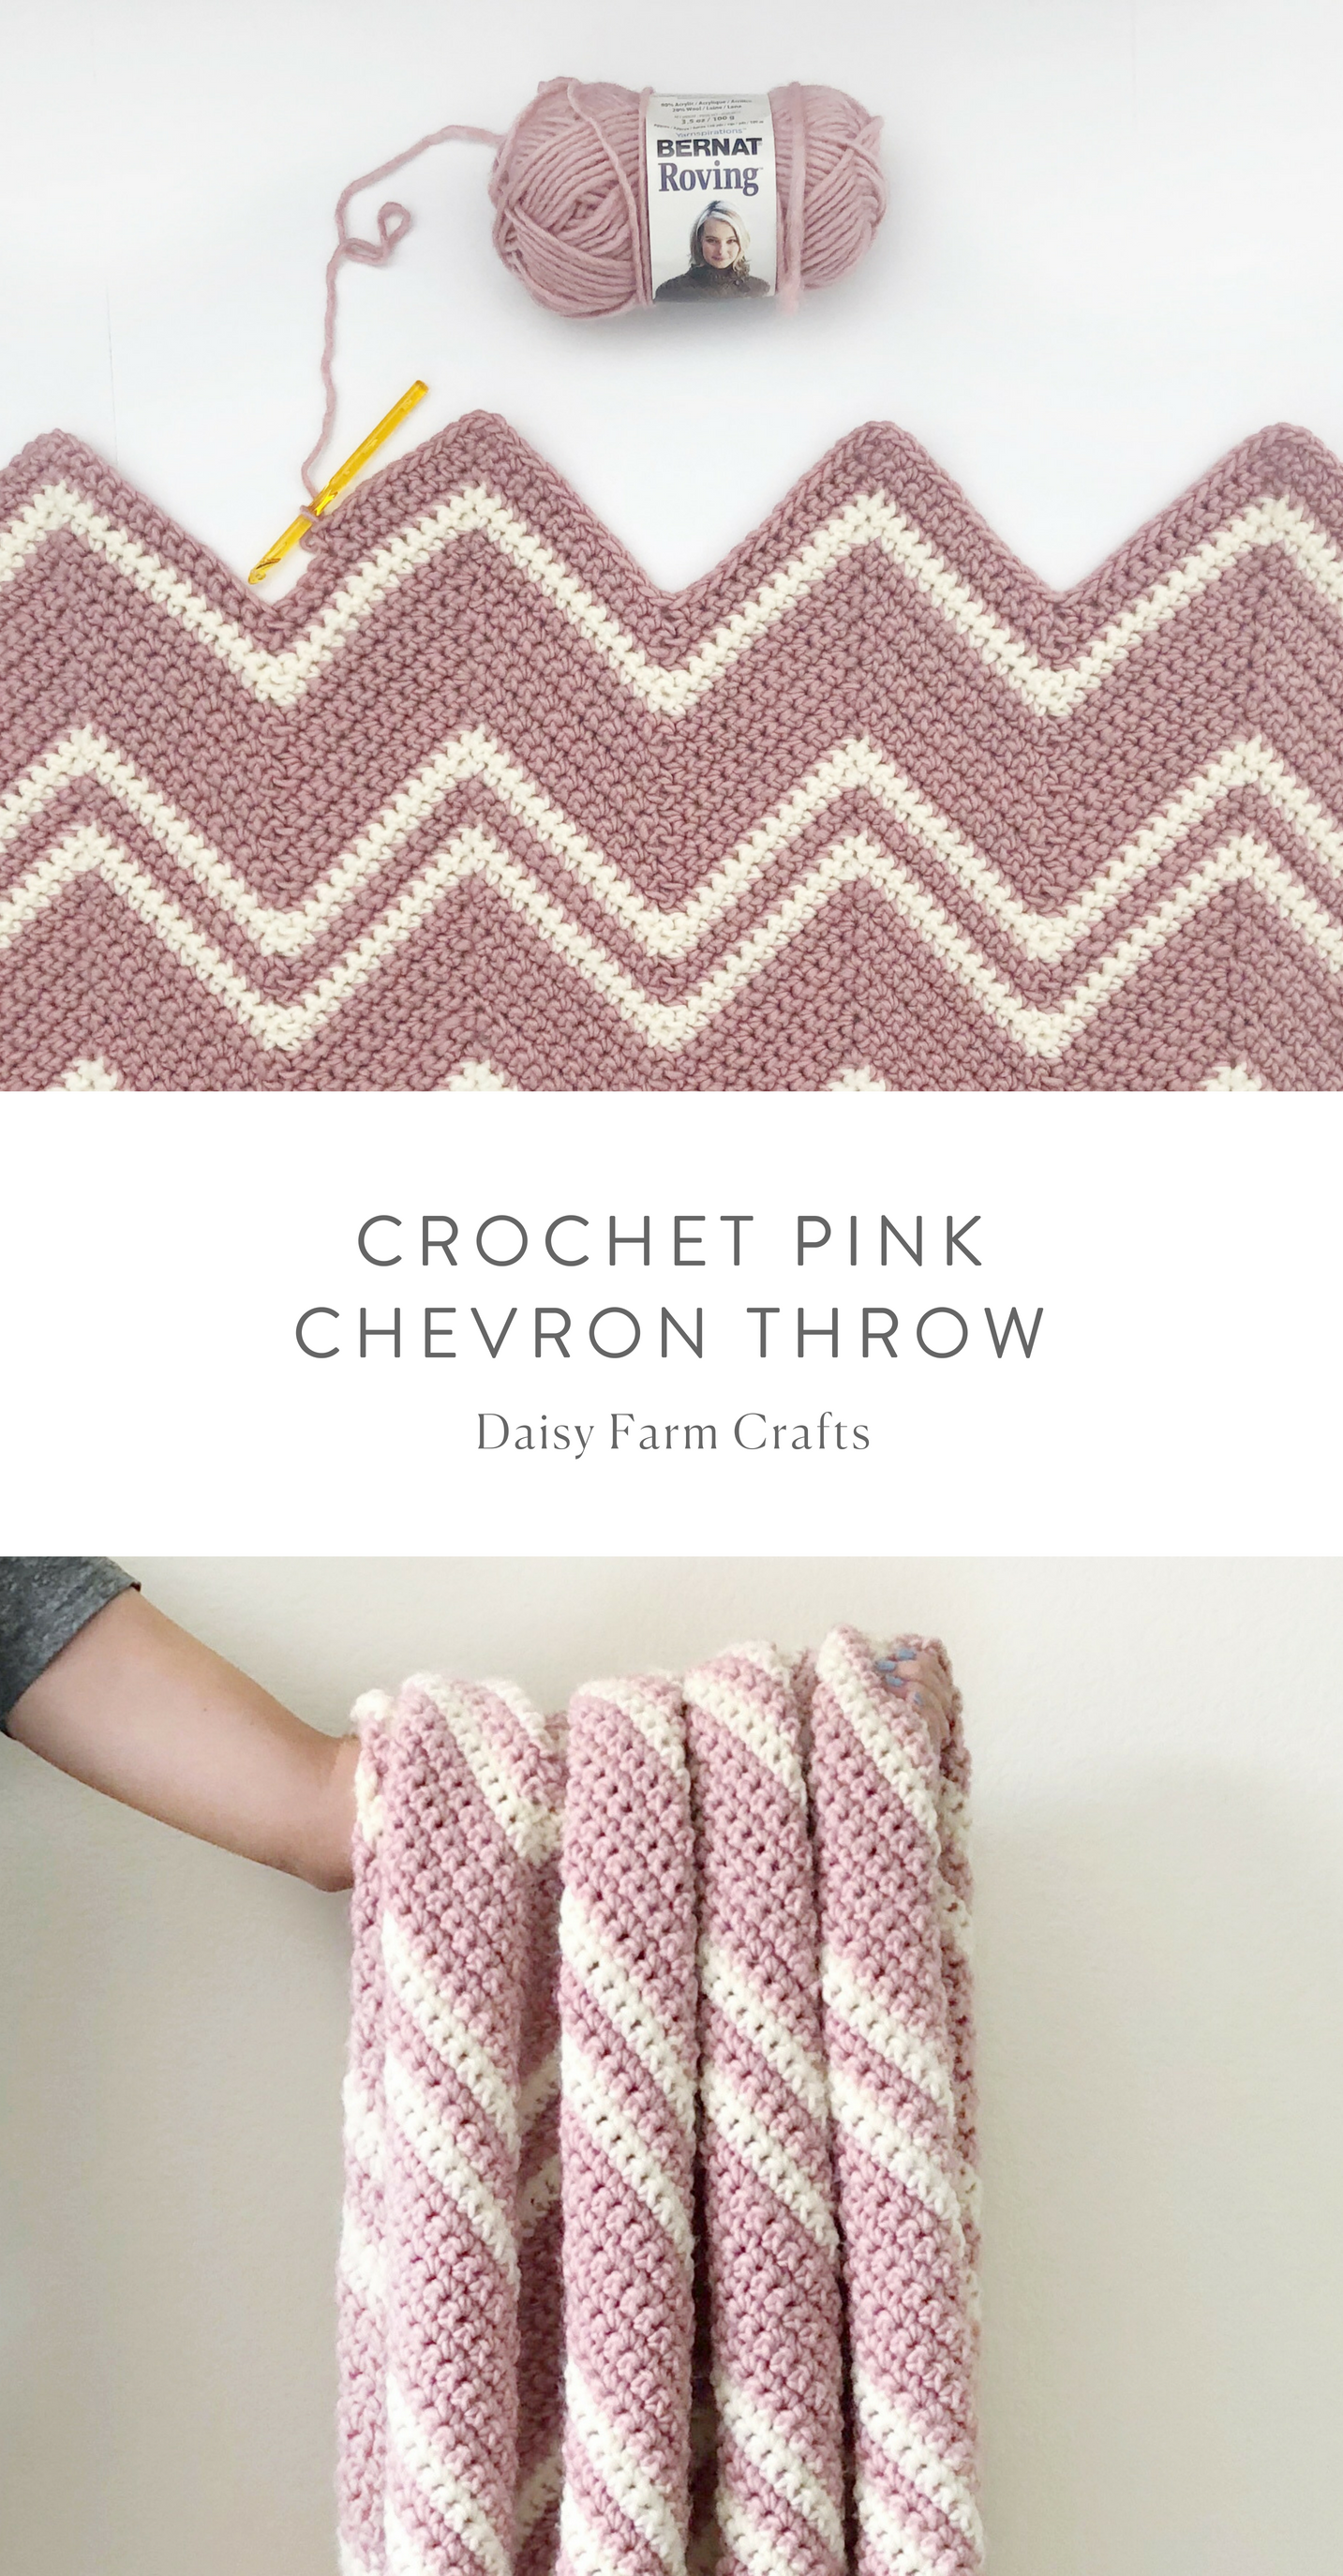 Free Pattern - Crochet Pink Chevron Throw #crochet | Needle Arts ...